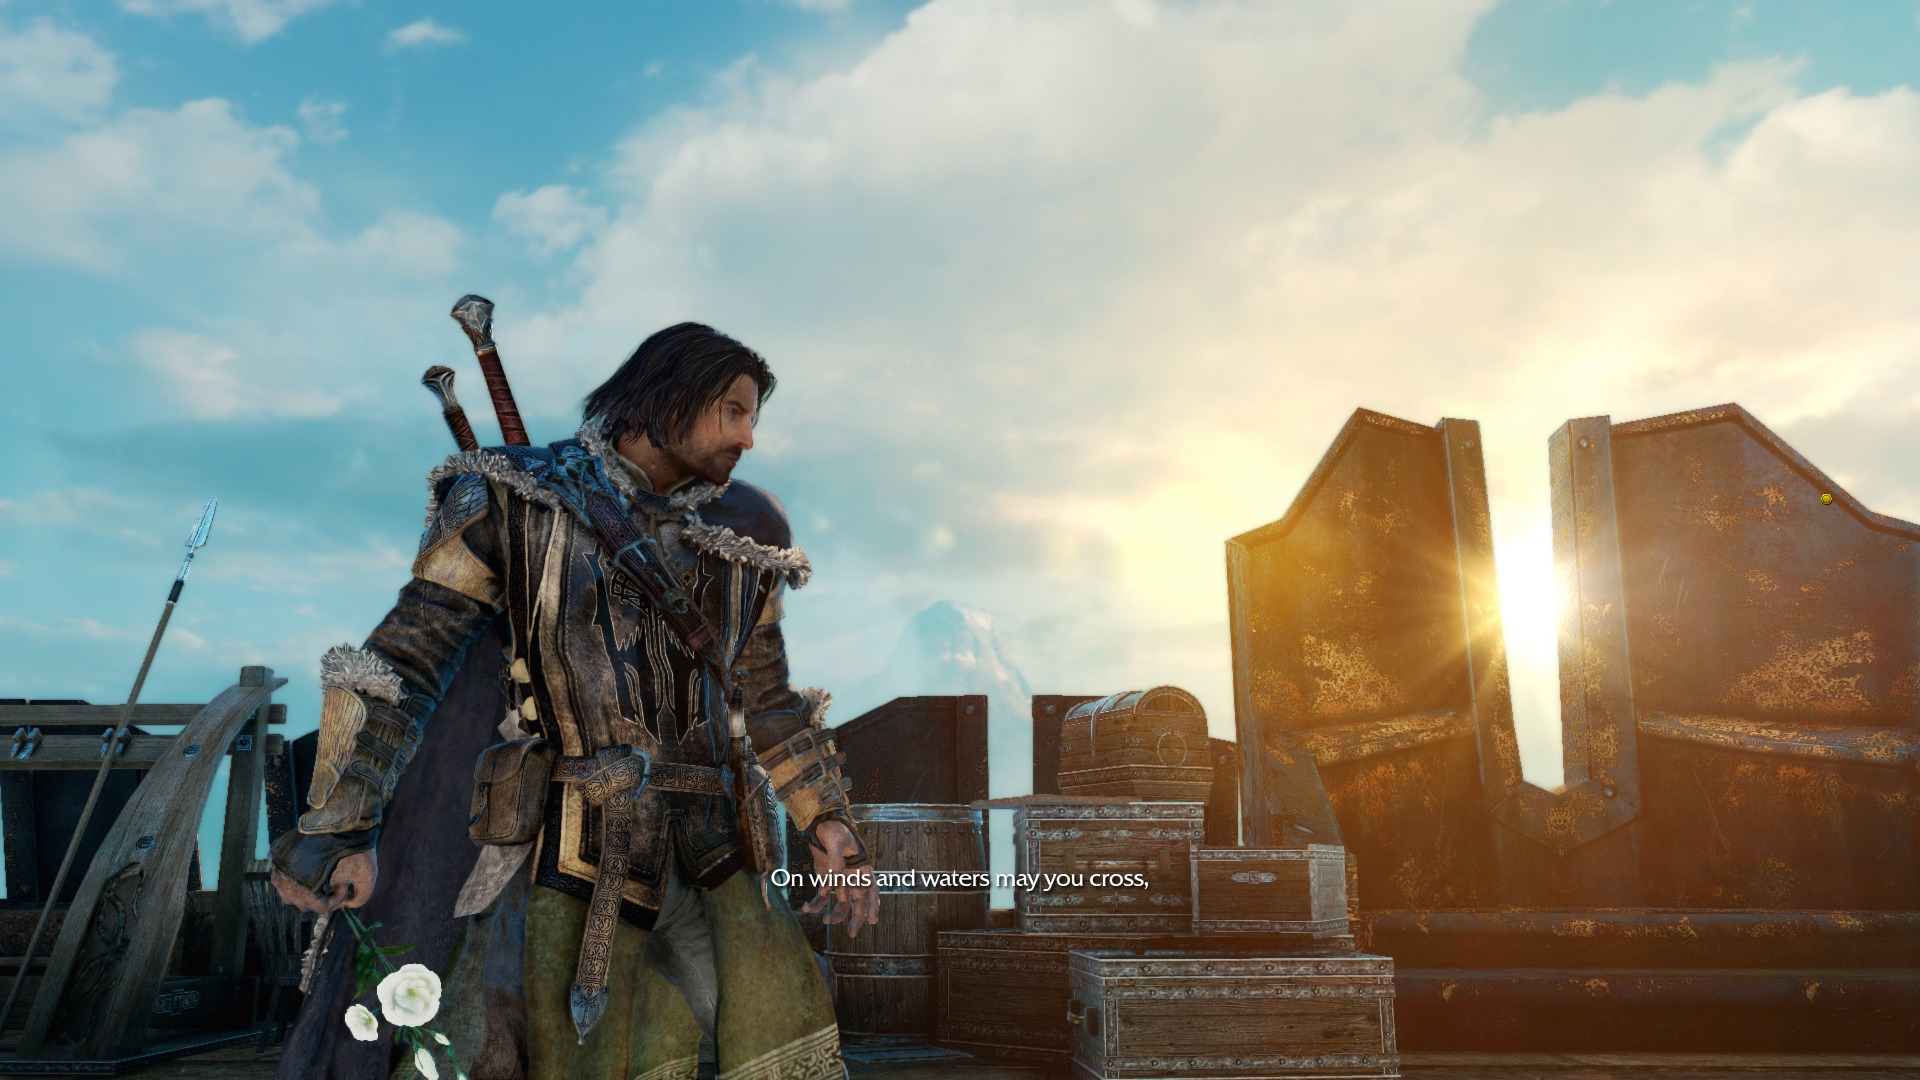 http://i2.wp.com/gearnuke.com/wp-content/uploads/2014/09/shadow-of-mordor-ps4-11.jpg